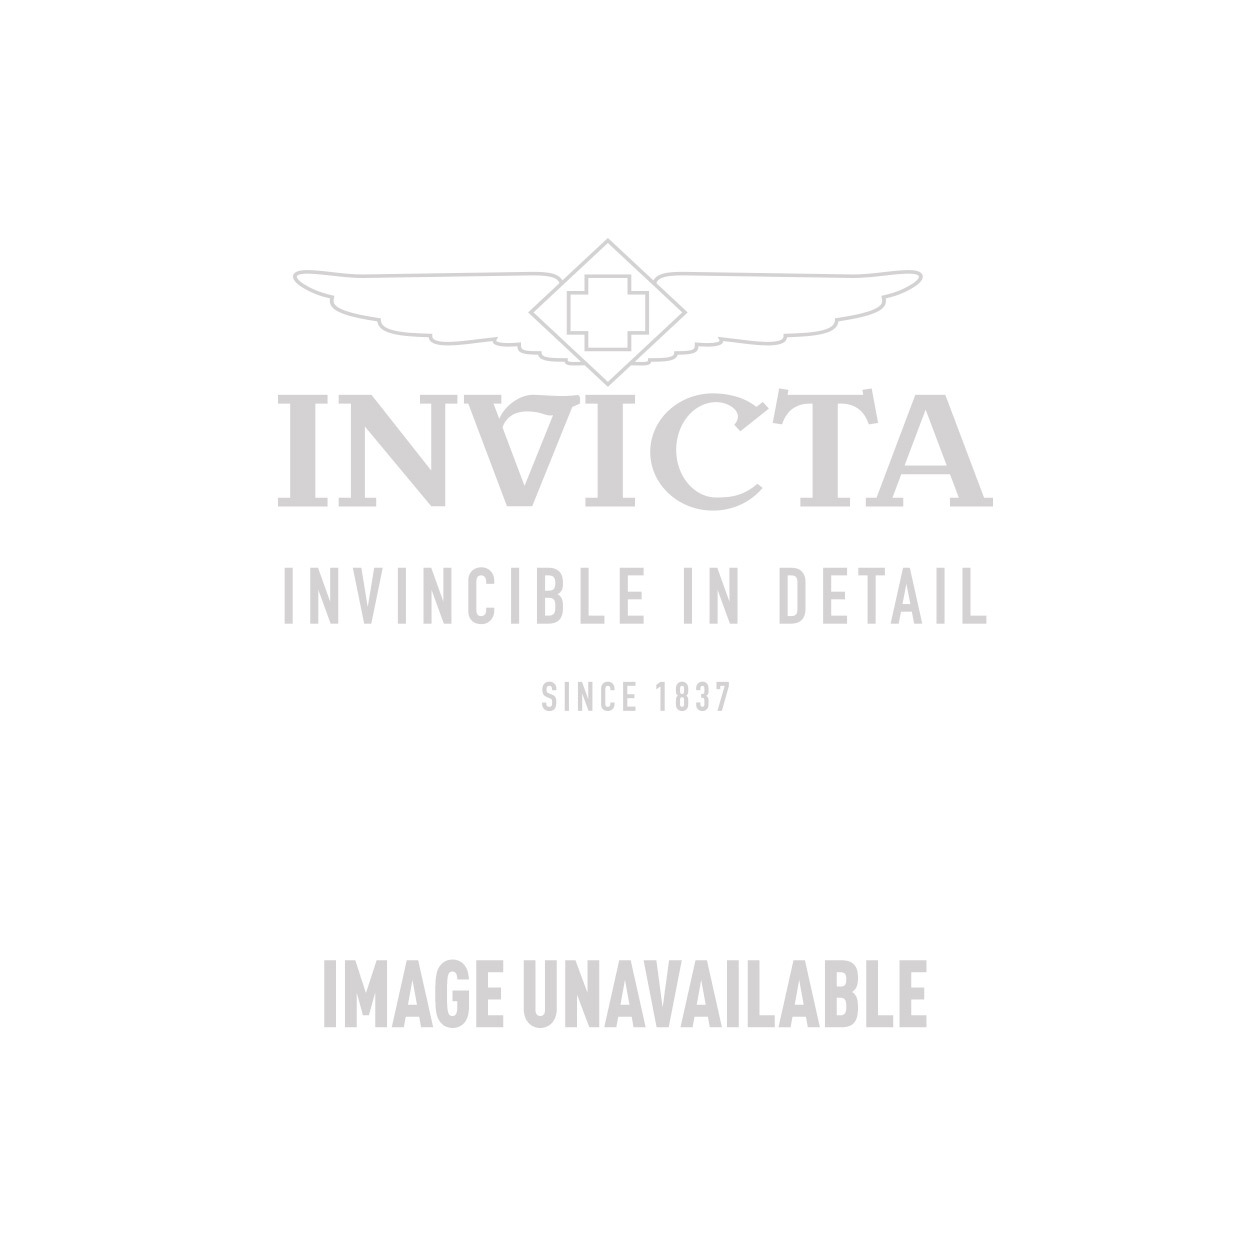 Invicta 21cm Men's Bracelets in Rhodium - Model J0013